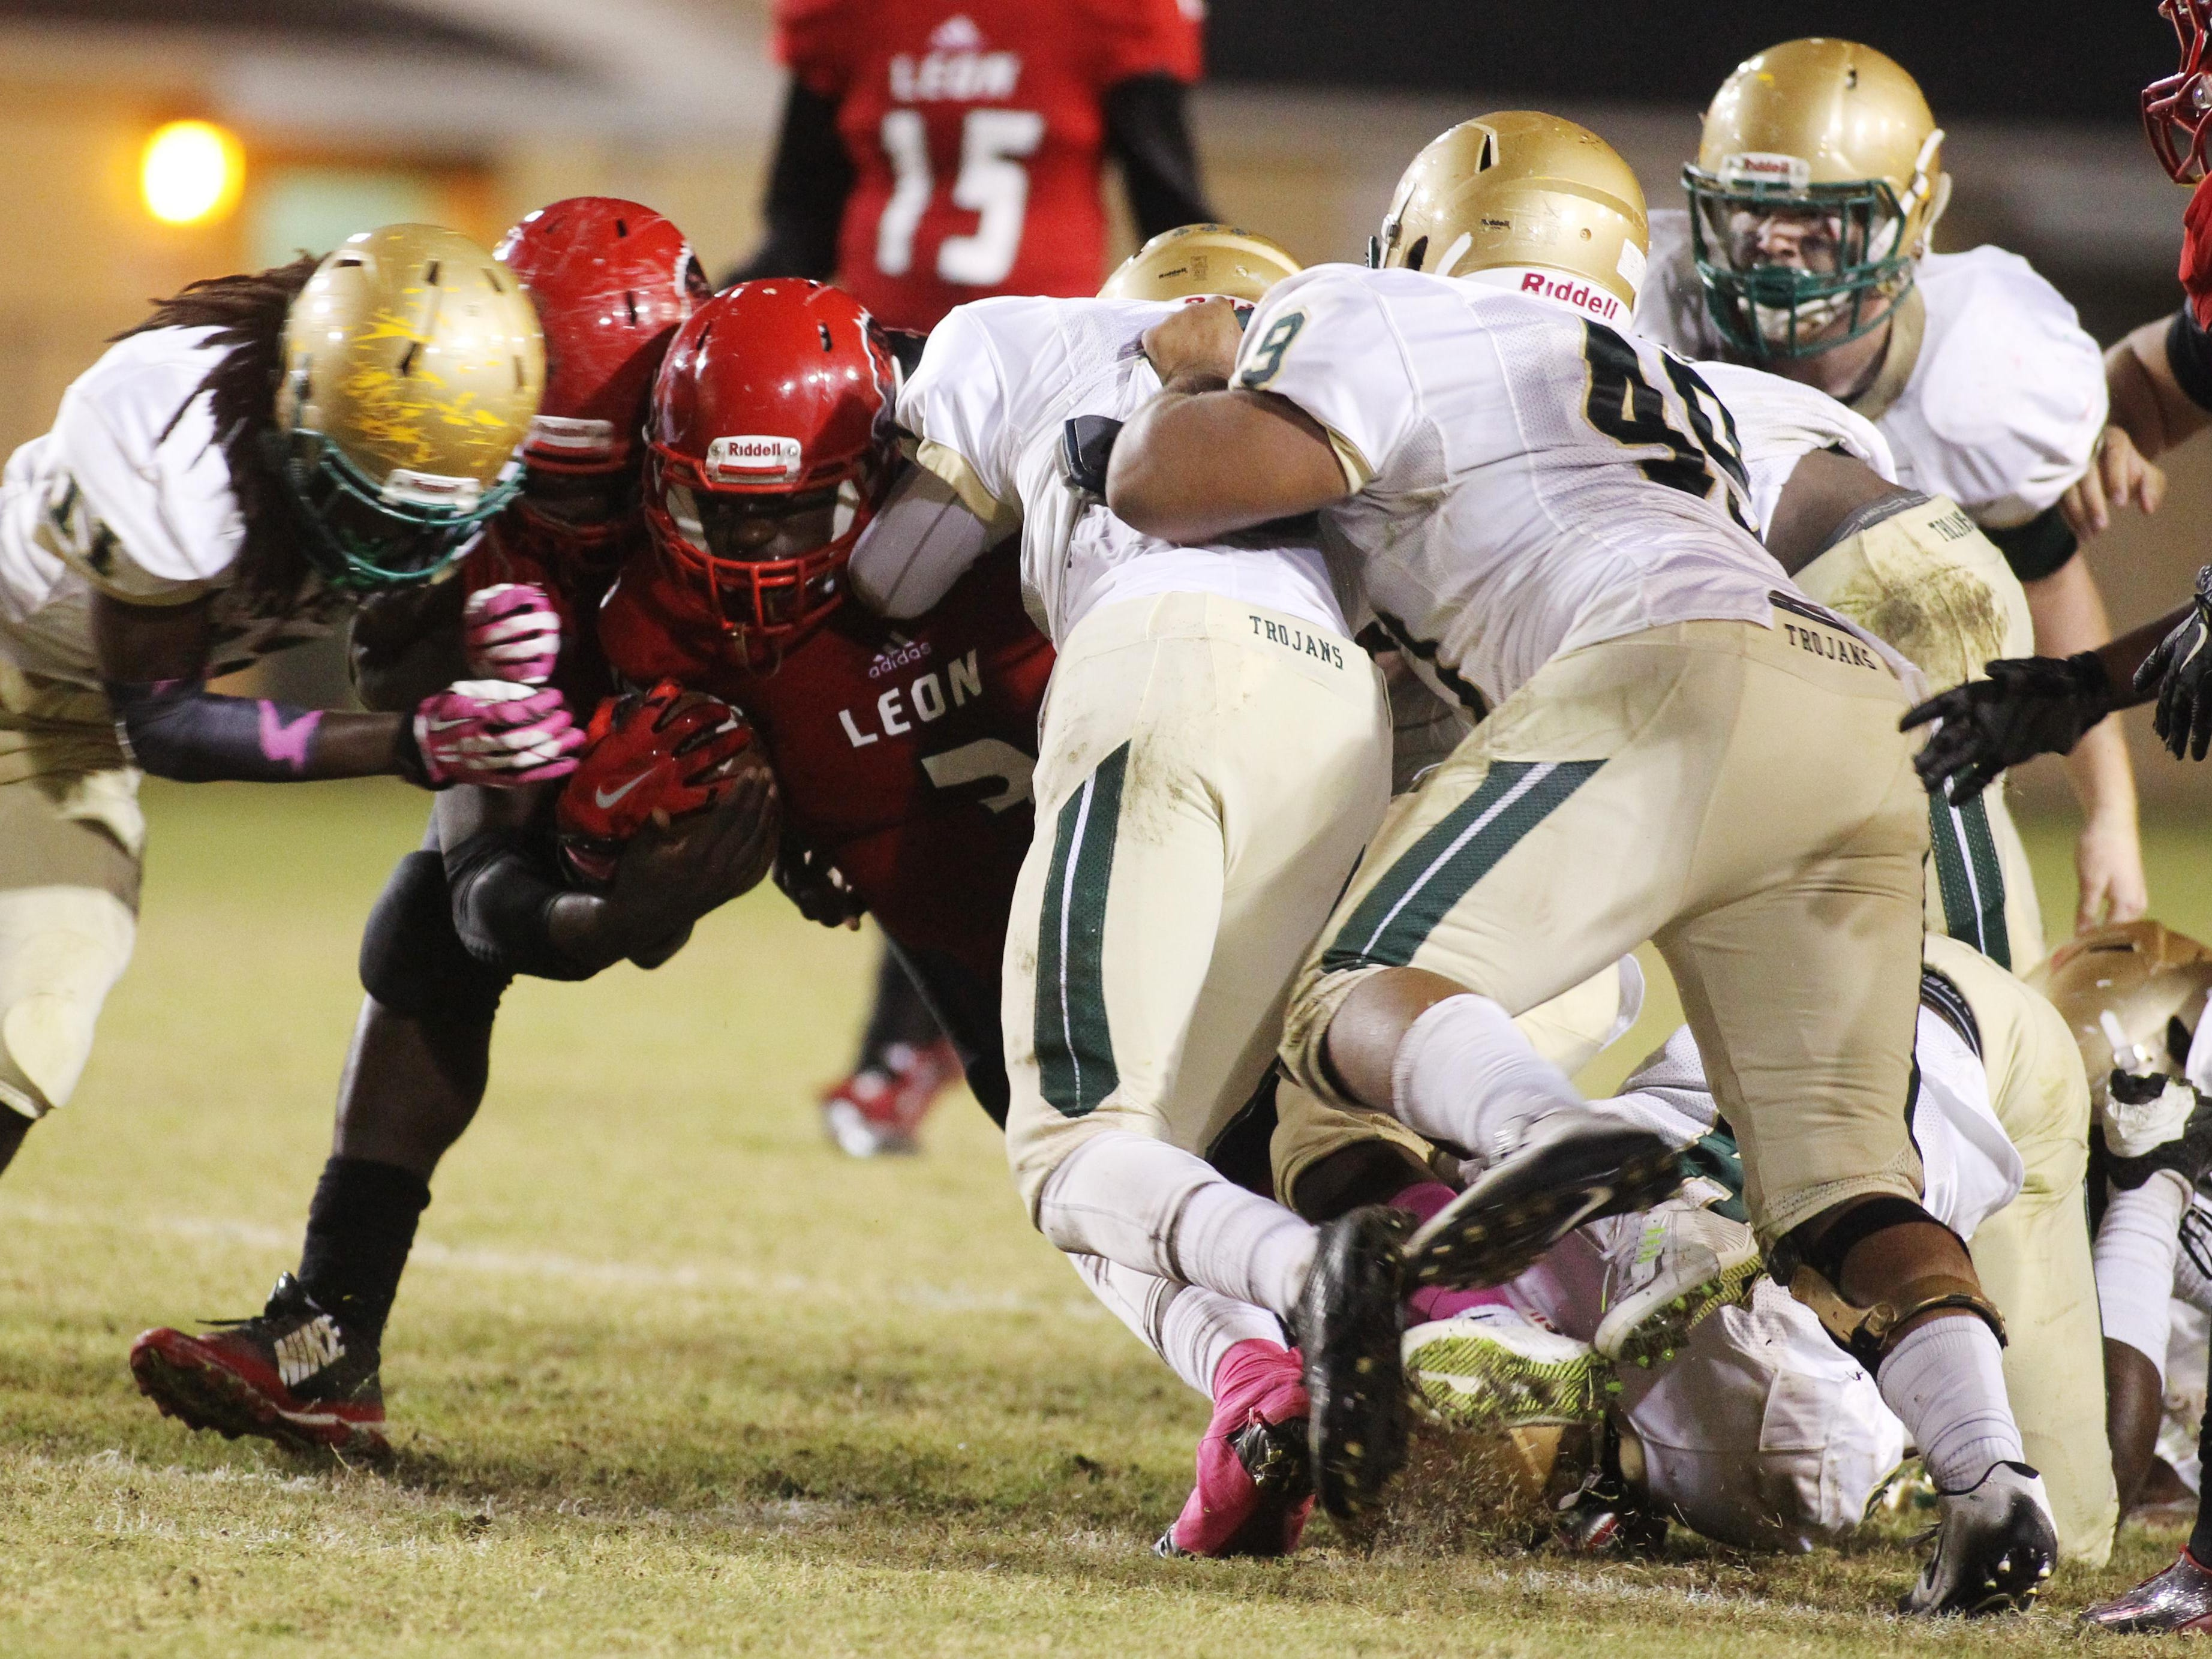 Leon High wide receiver J'air Jones tries to run through a wall of Lincoln High defenders in Friday's game at Cox Stadium.